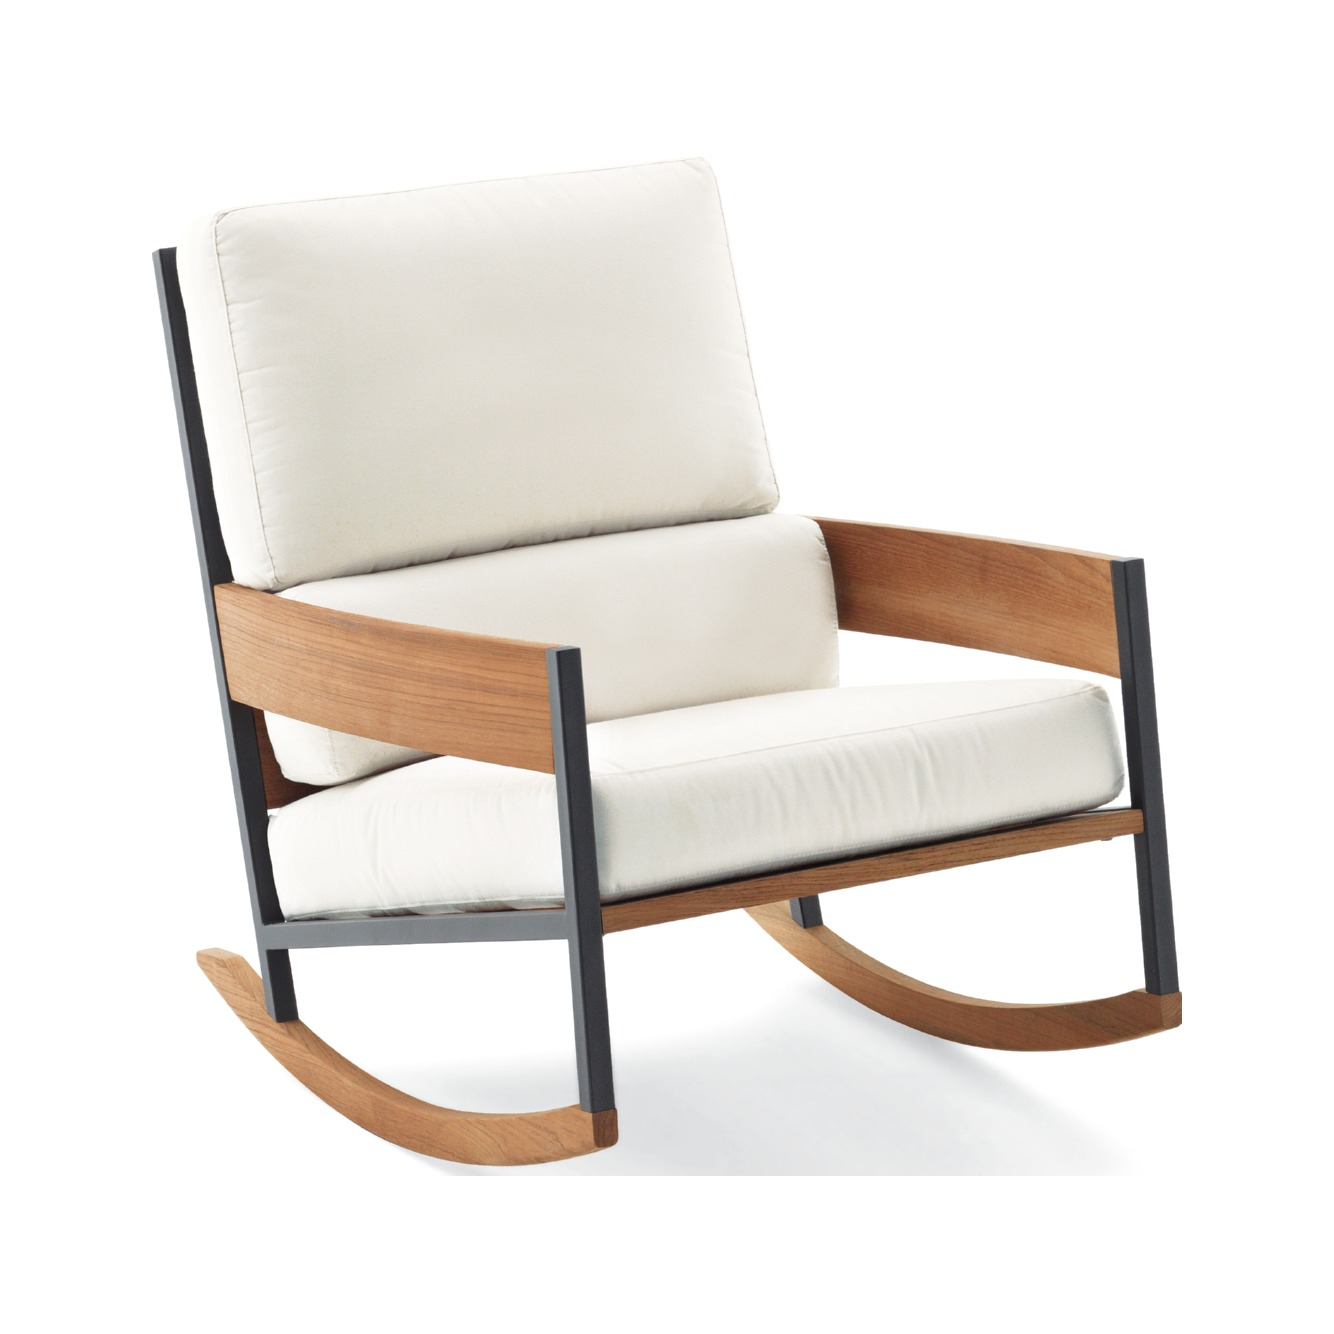 Nap Rocking Chair - Roda | Stainless Steel, Teak | Jdv dedans Rocking Chair Jardin